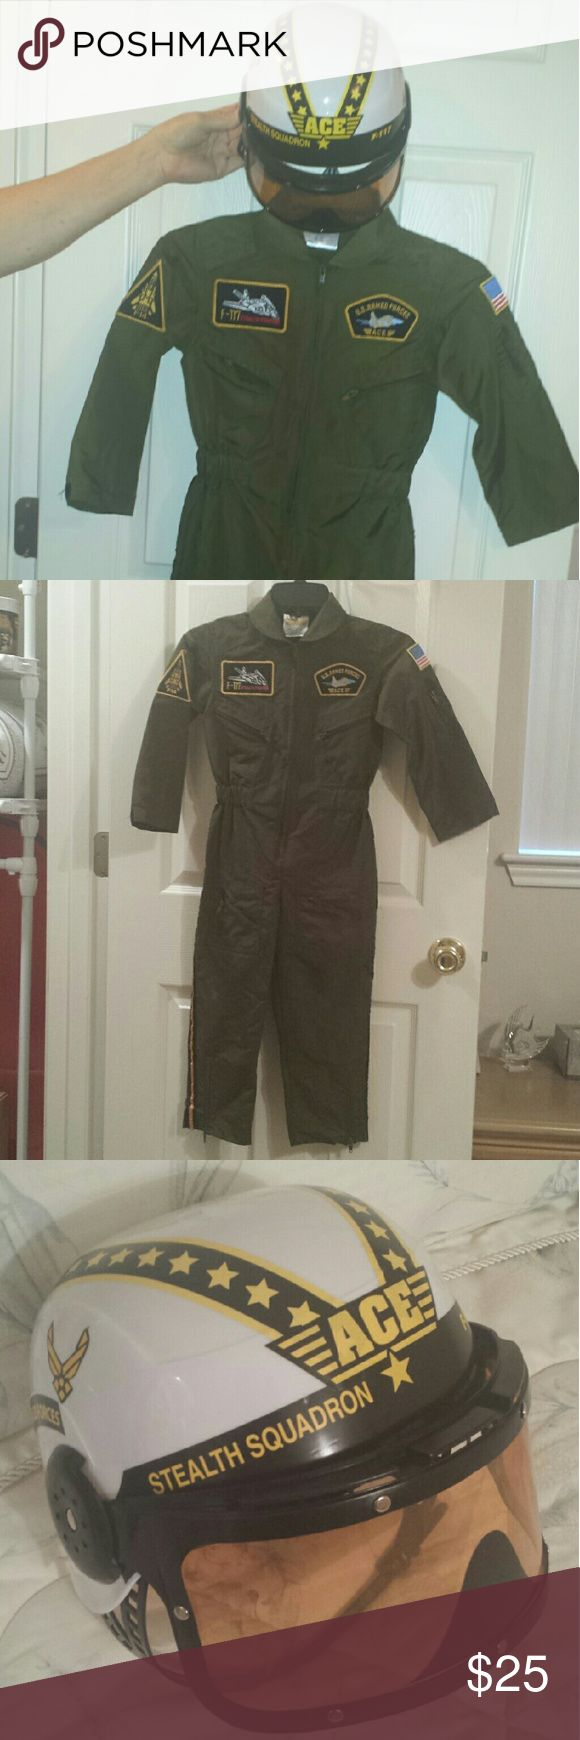 Kids Pilot Suit Costume Kids Pilot Suit Costume Get real gear dress up for kids Costumes Halloween